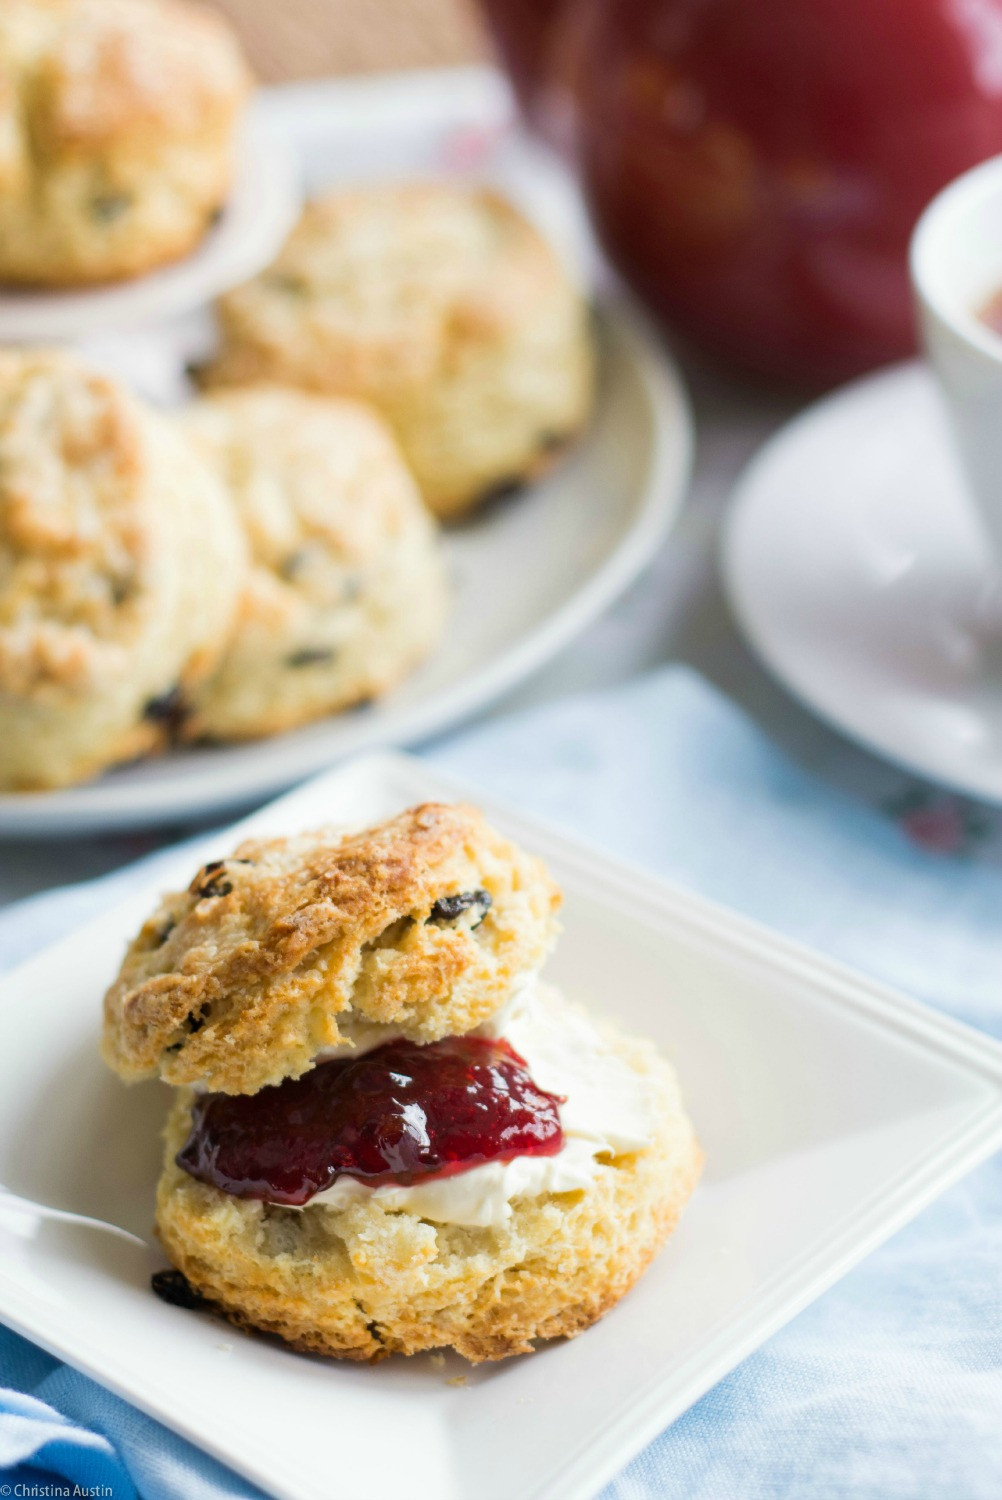 Currant scones with Devonshire Cream and homemade jam